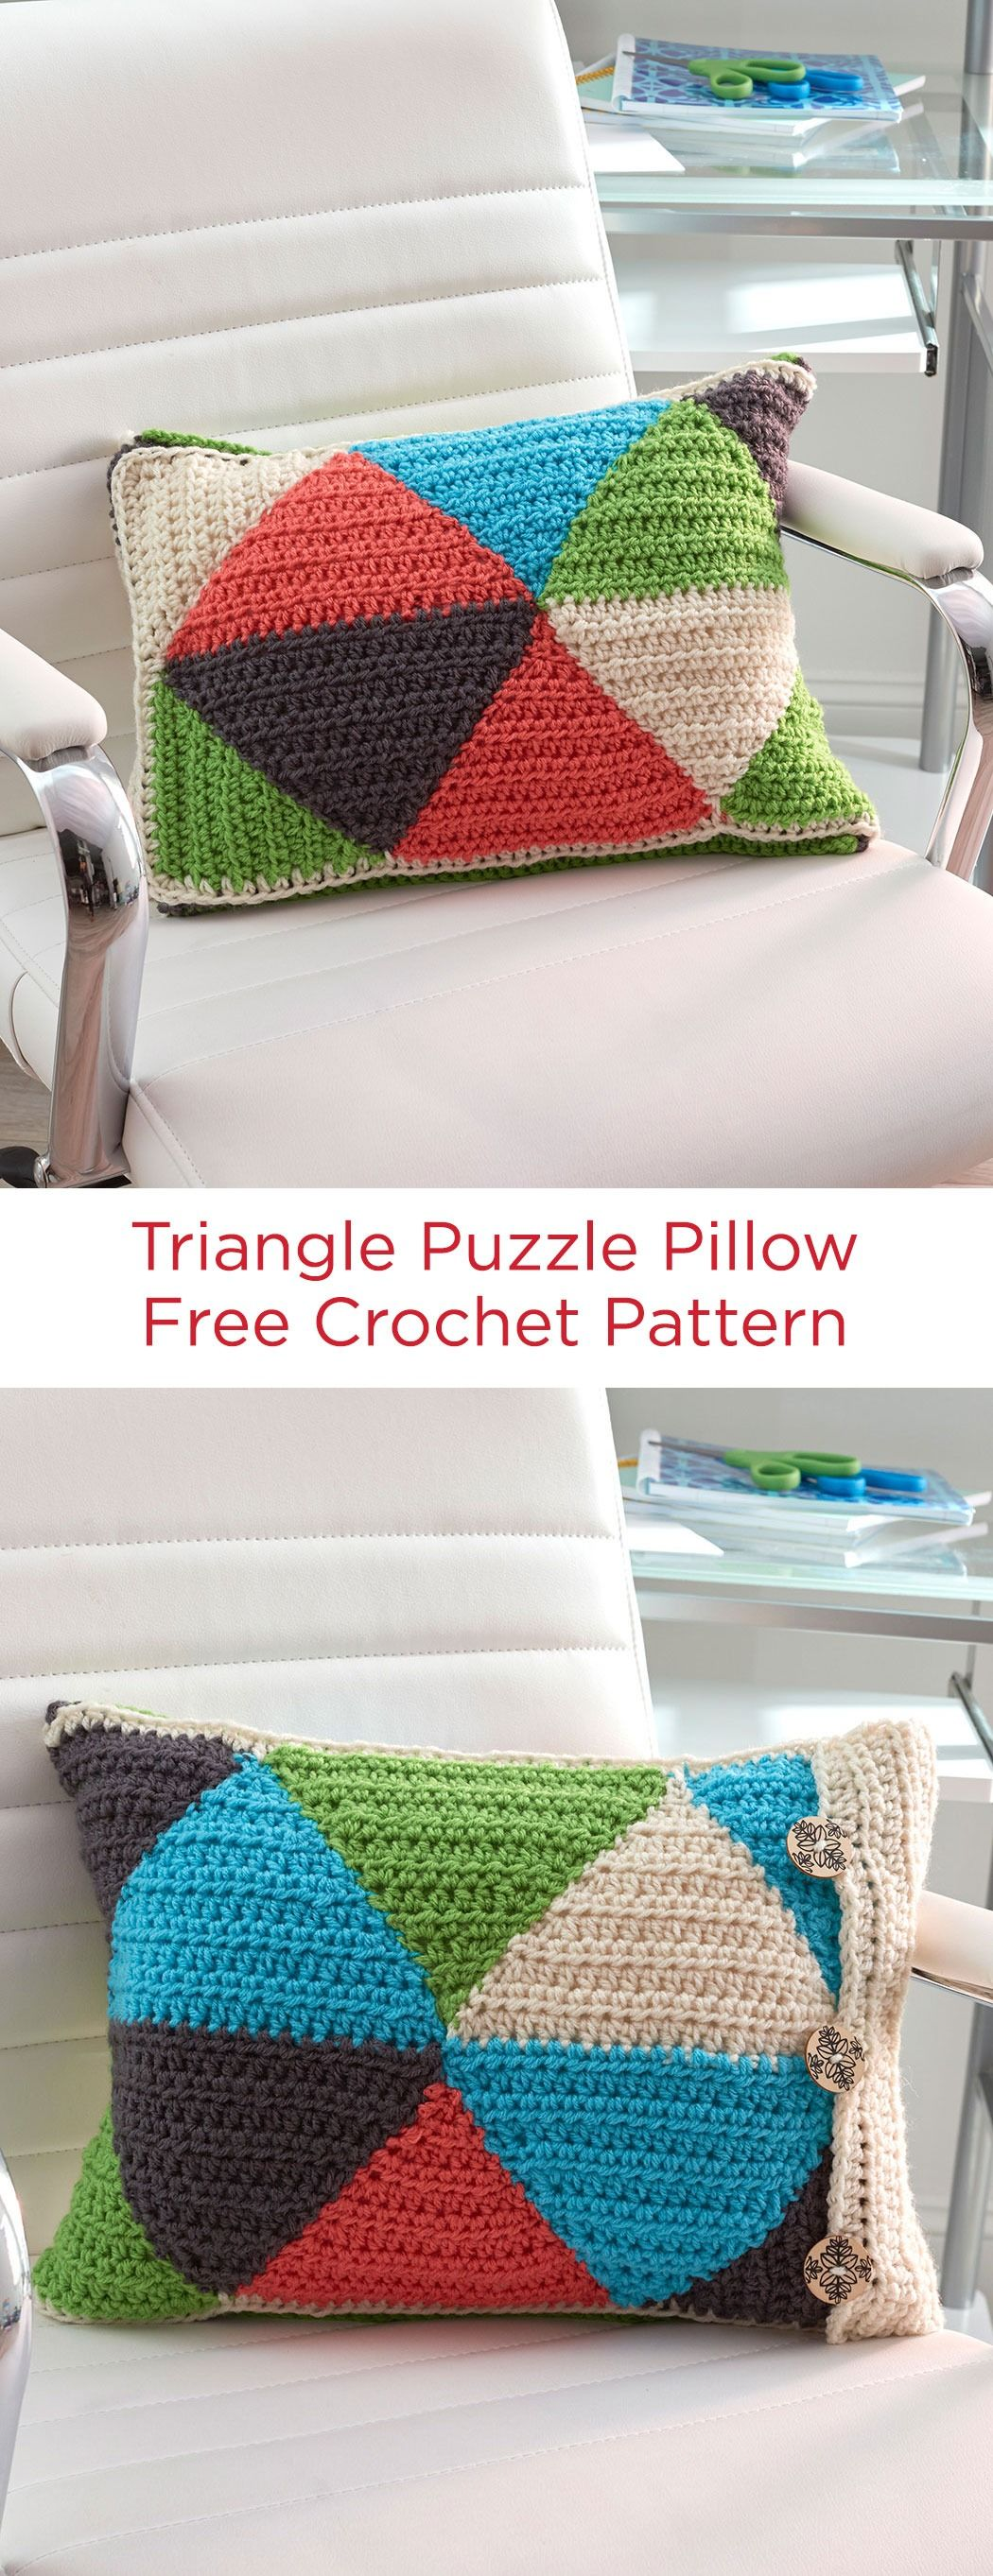 Triangle Puzzle Pillow Free Crochet Pattern in Red Heart Yarns ...